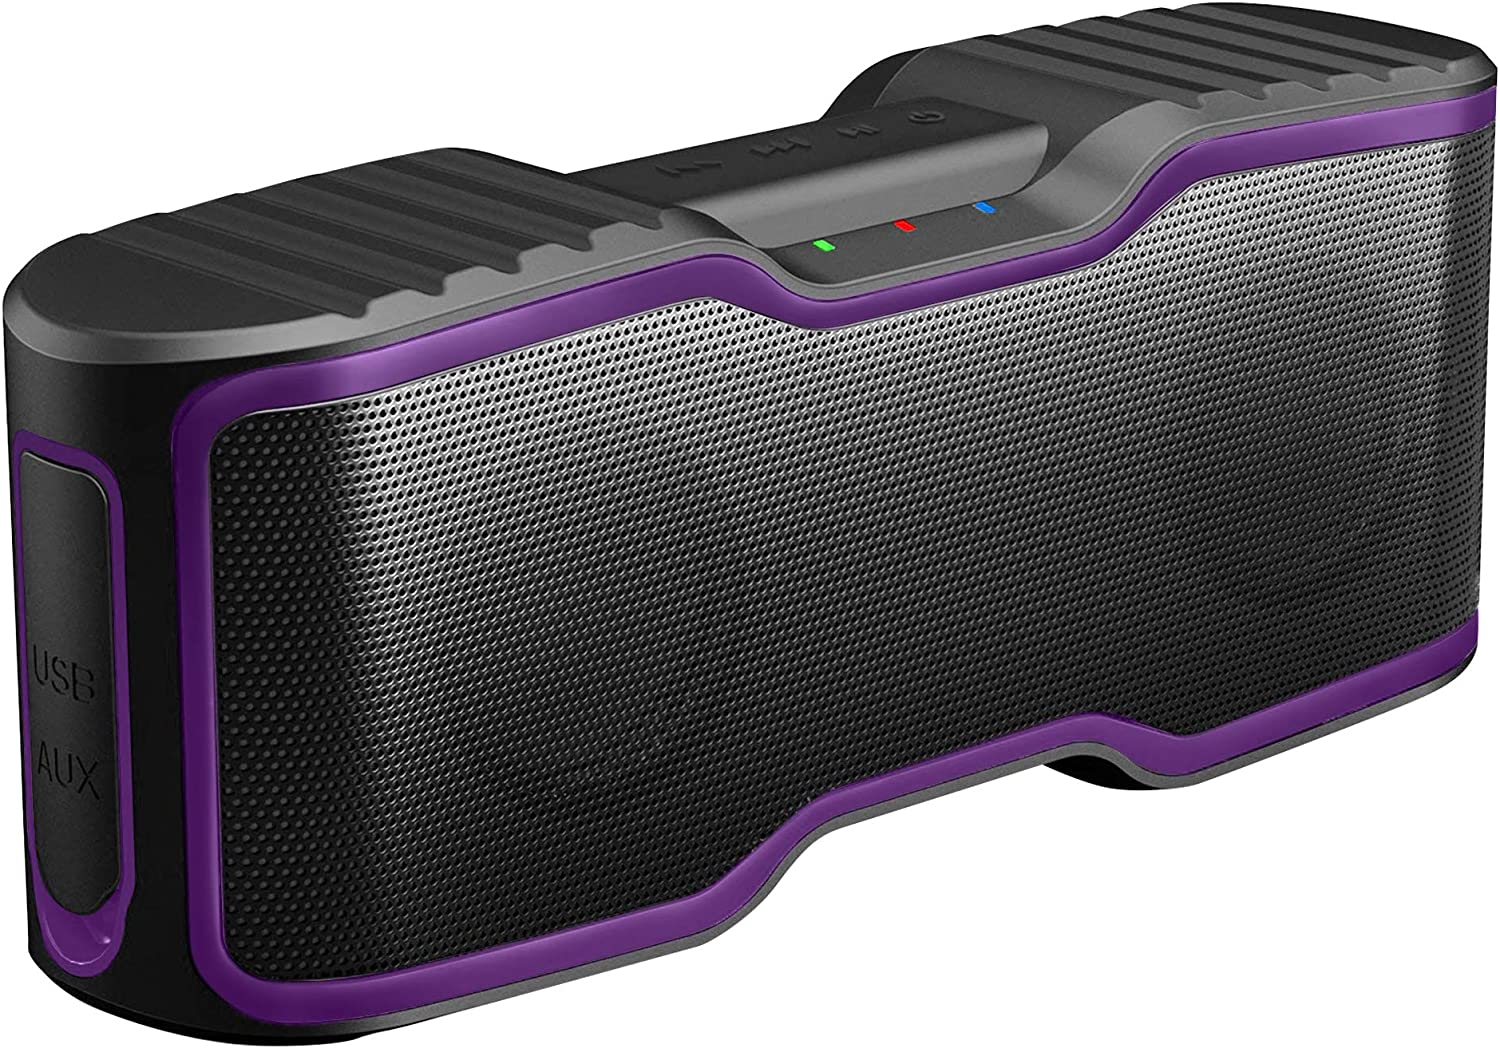 AOMAIS Sport II Portable Wireless Bluetooth Speakers Waterproof IPX7, 15H Playtime, V5.0, 20W Bass Sound, Stereo Pairing, for Outdoors, Travel, Pool, Home Party 2020 Upgrade Purple